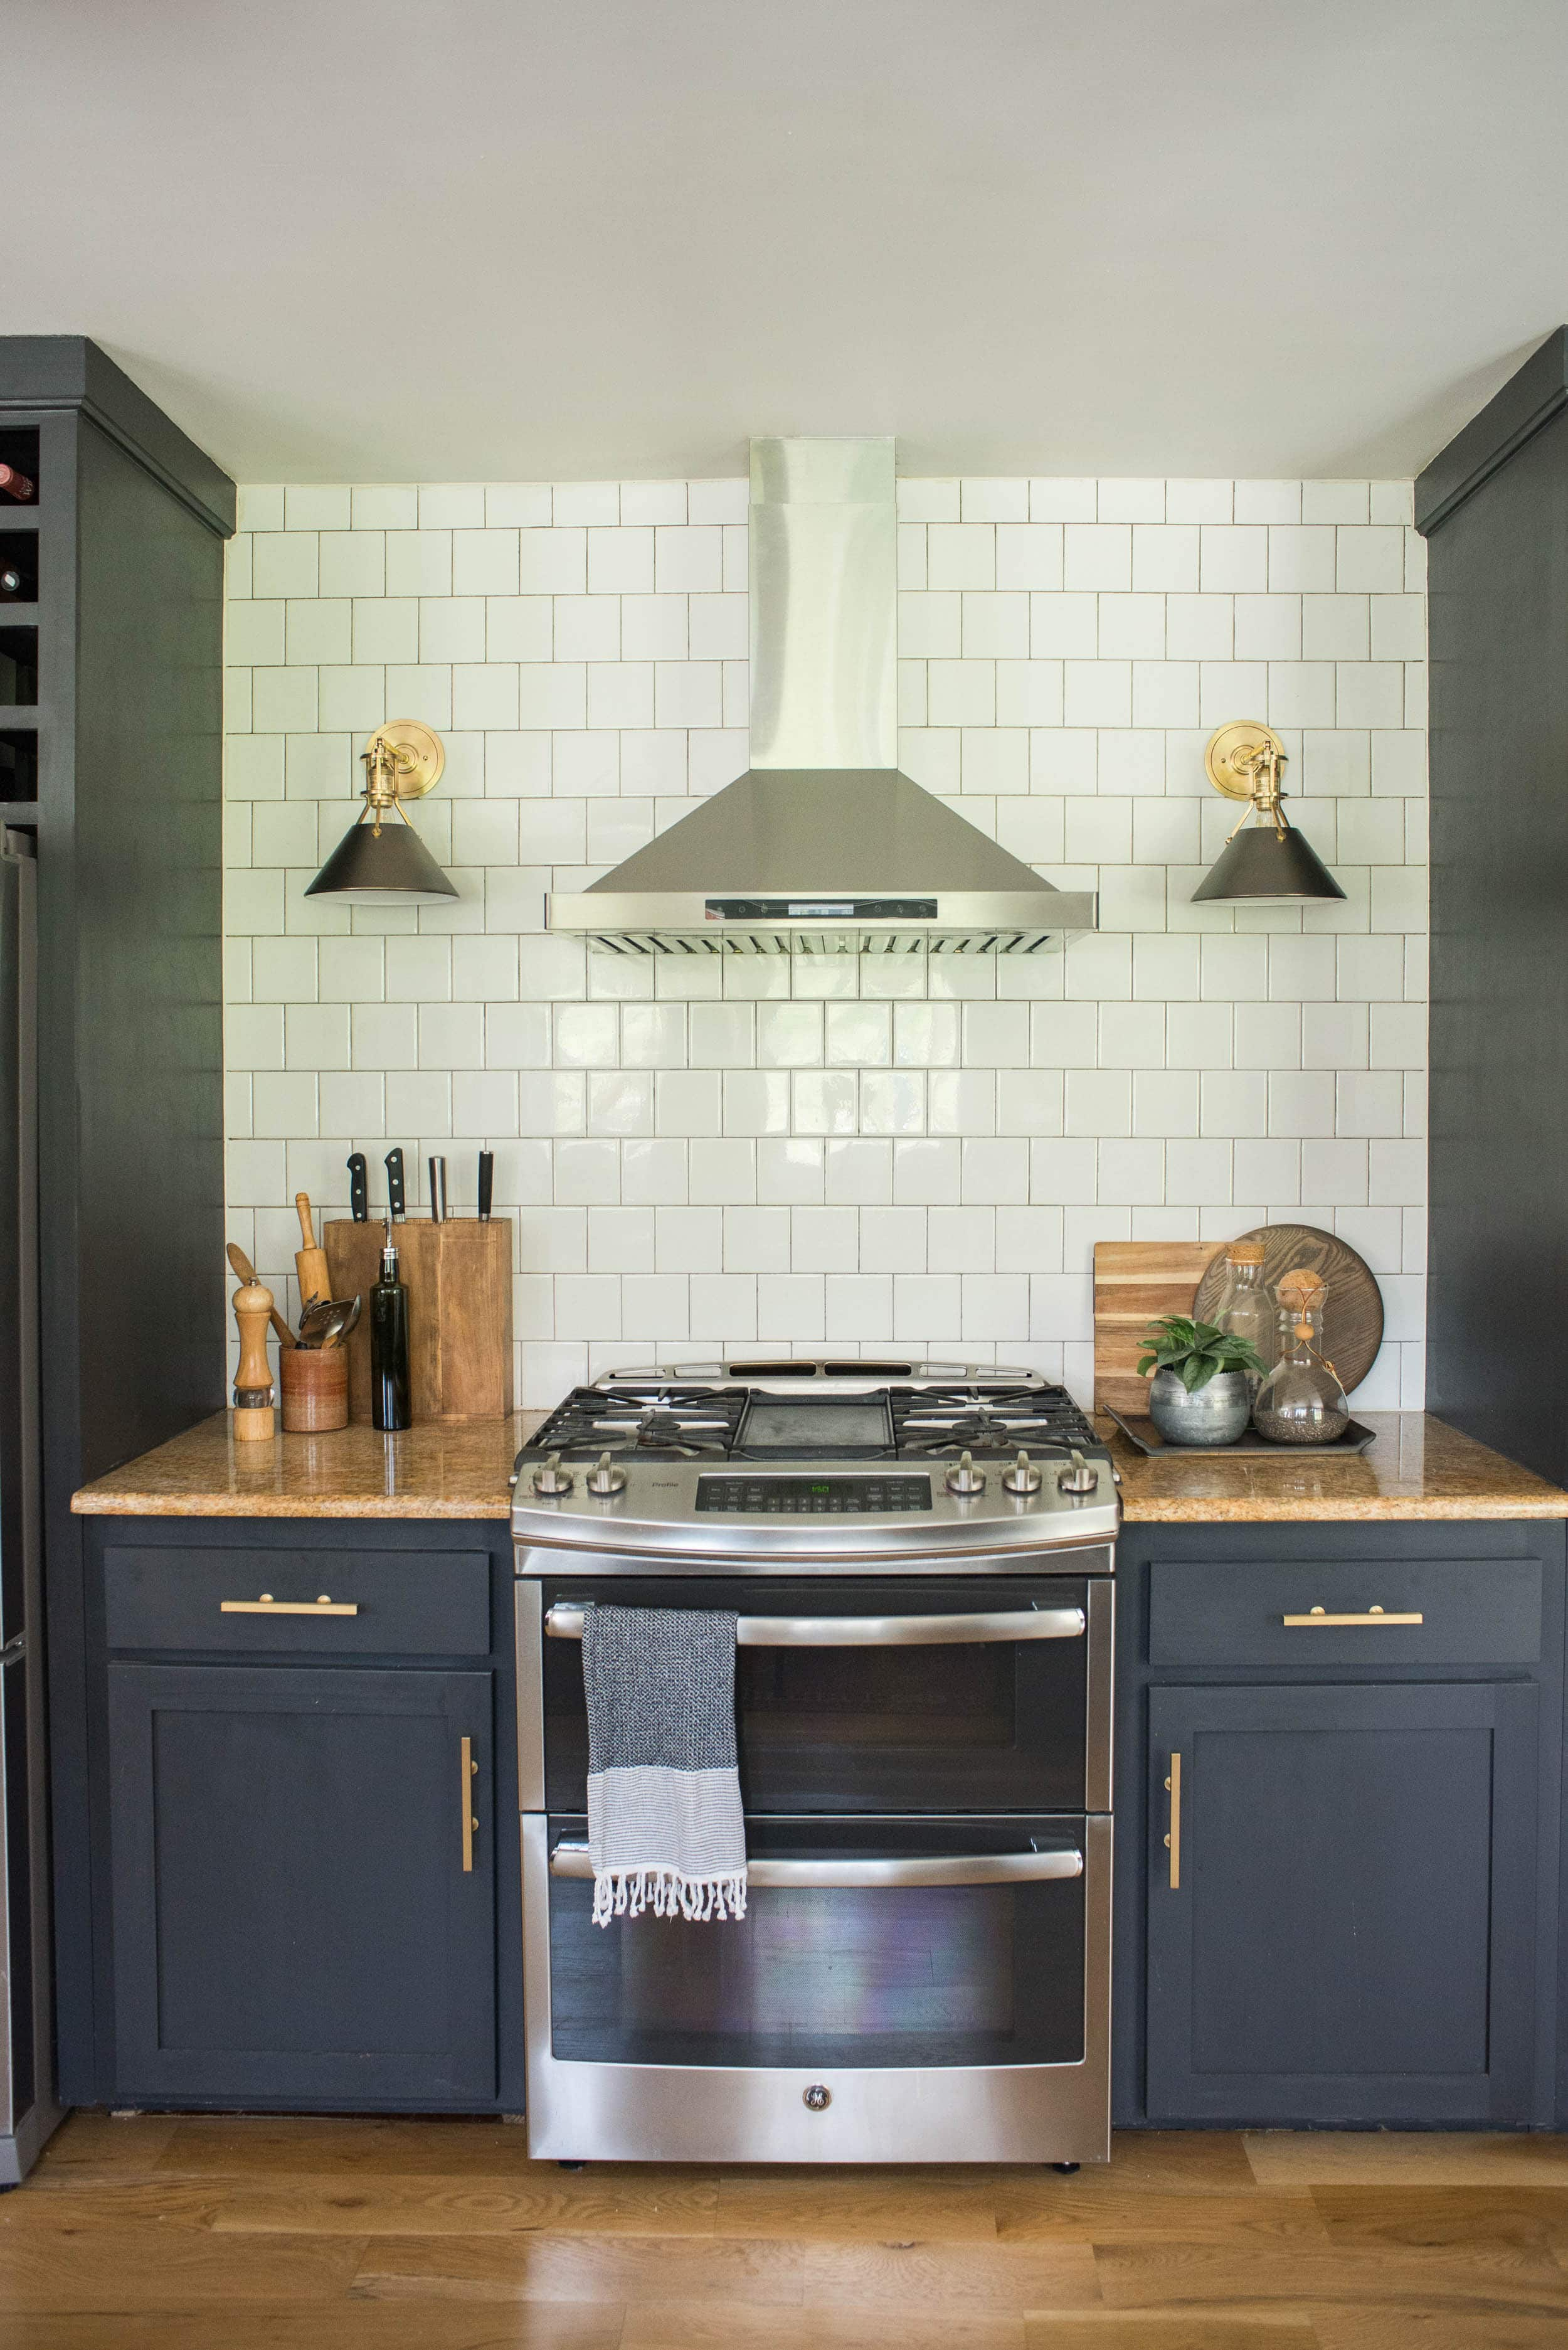 Kitchens sconces on each side of oven in kitchen